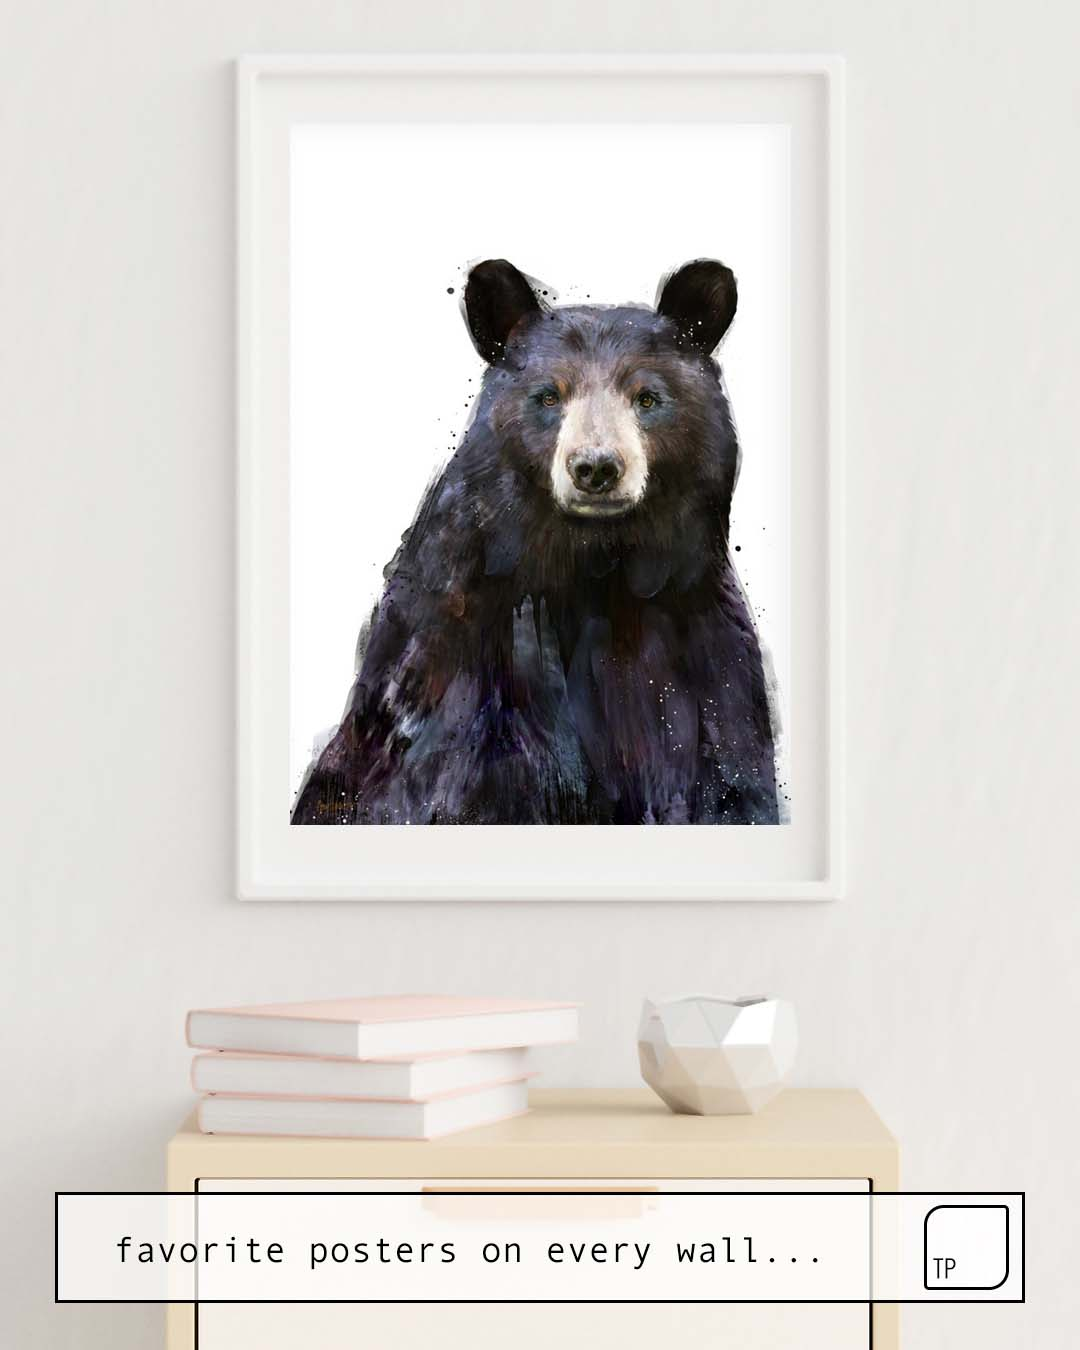 The photo shows an example of furnishing with the motif BLACK BEAR by Amy Hamilton as mural